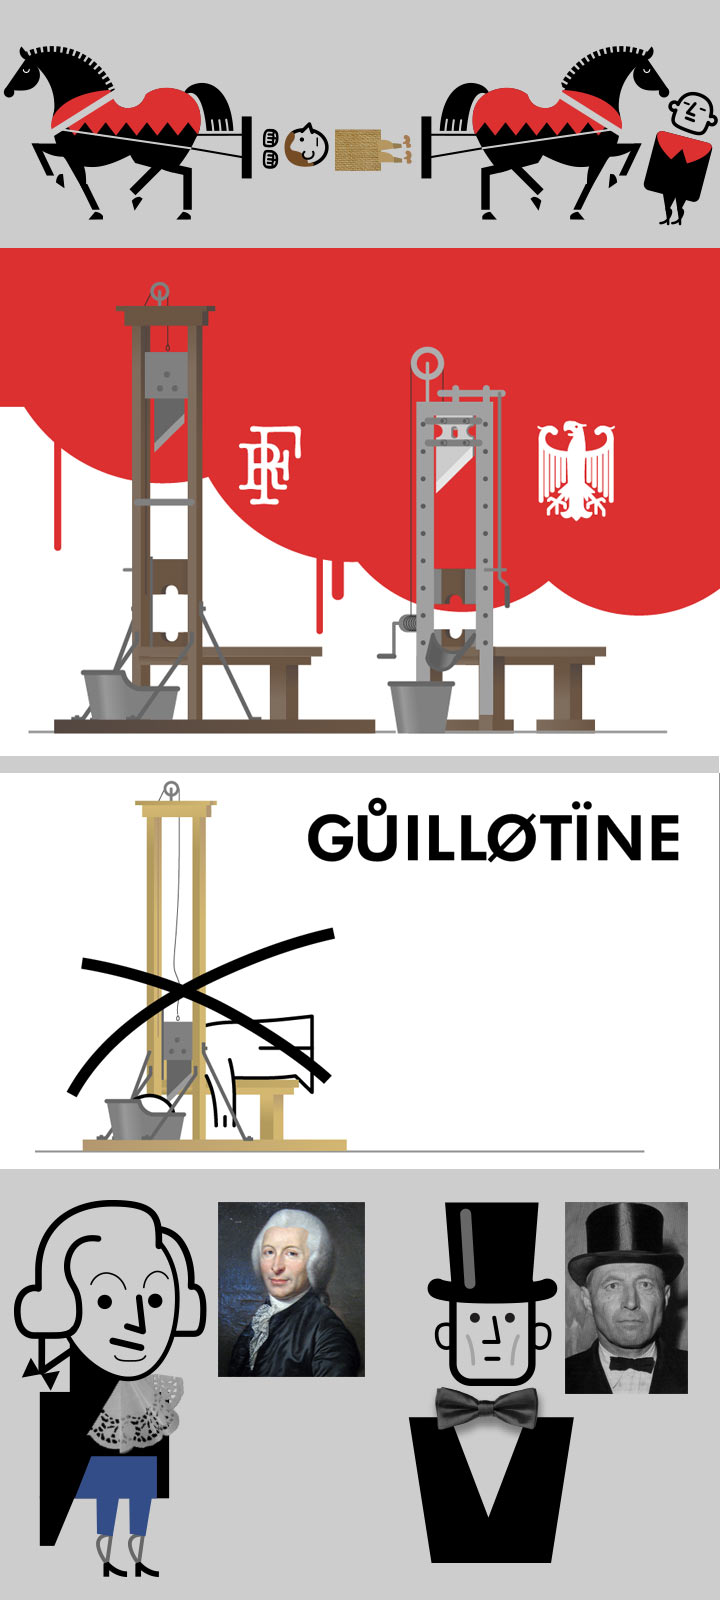 guillotine_site_web.jpg